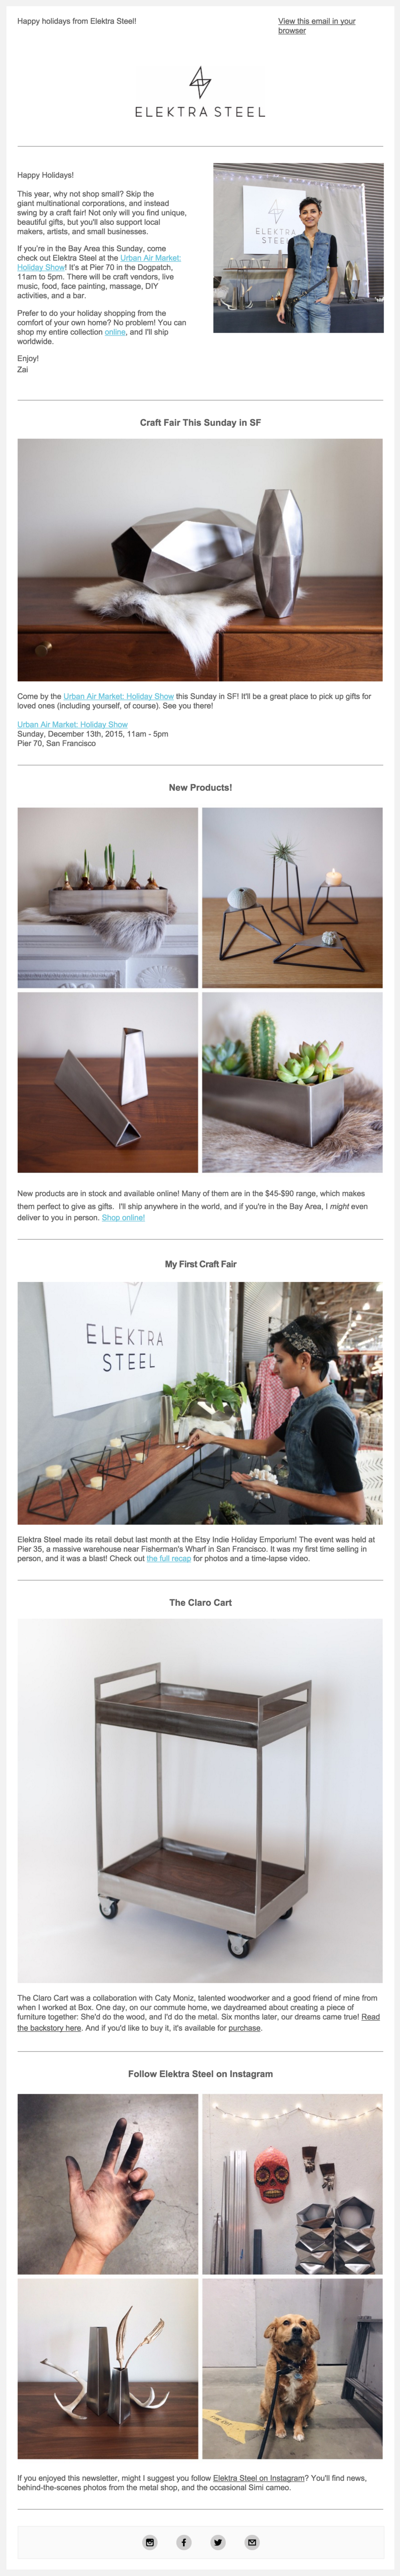 elektra-steel-newsletter-dec-2015